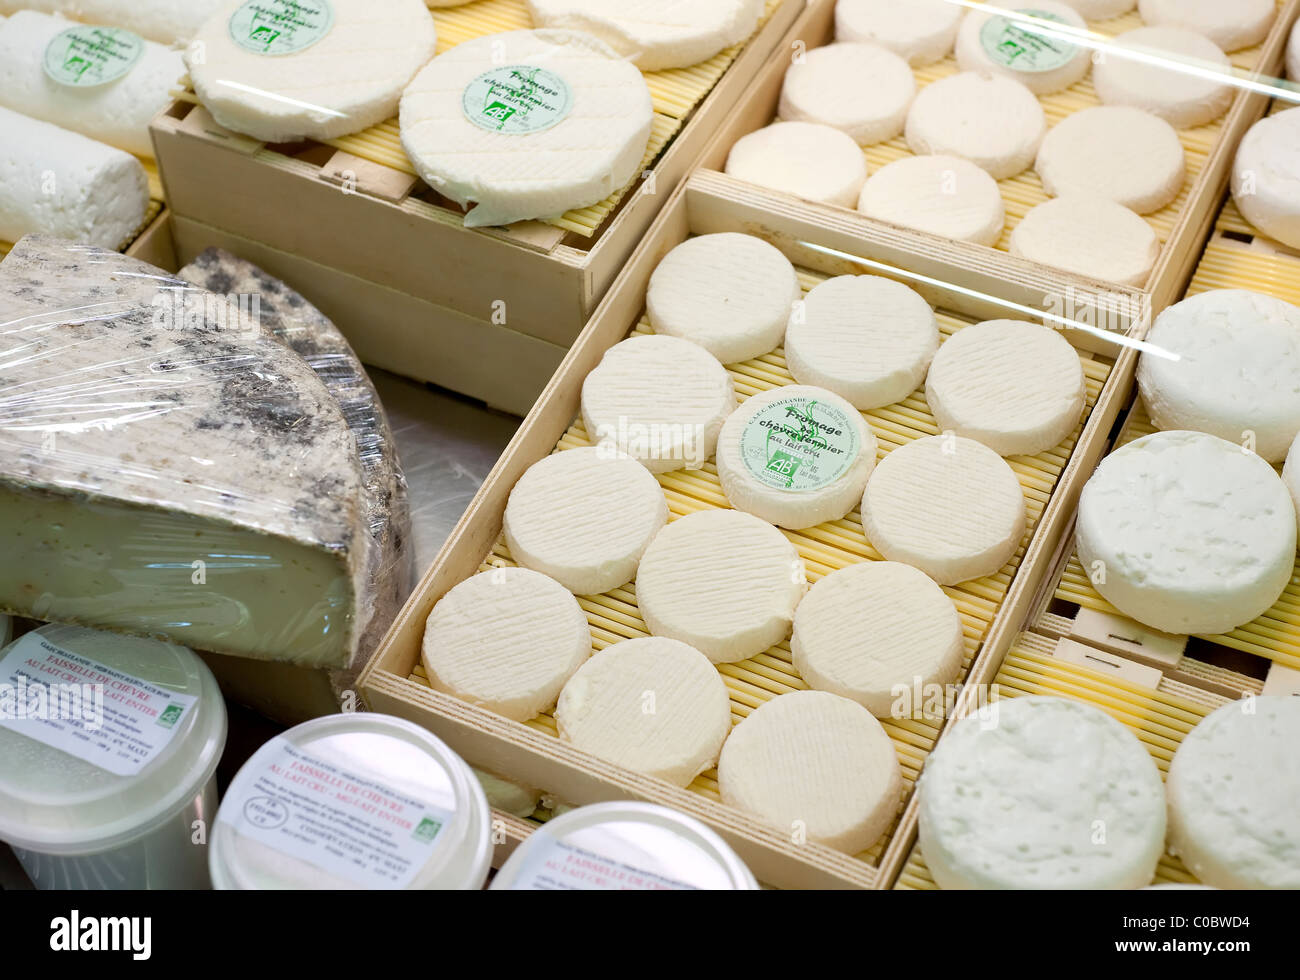 Paris, France -  Fromagerie - Stock Image